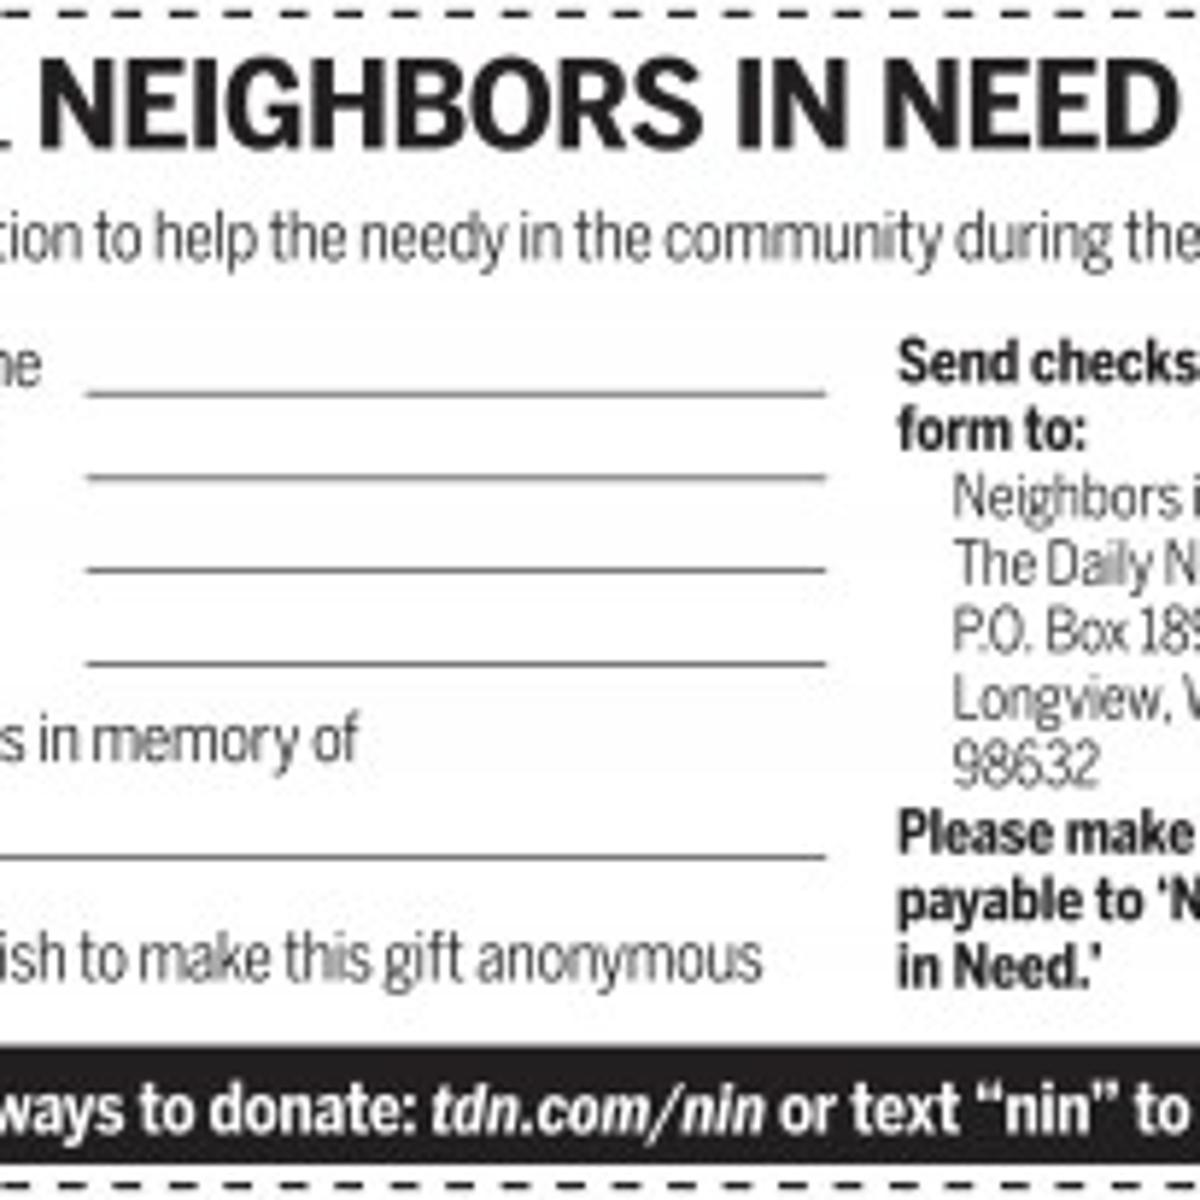 2011-12 Neighbors in Need Drive Donors List | | tdn com